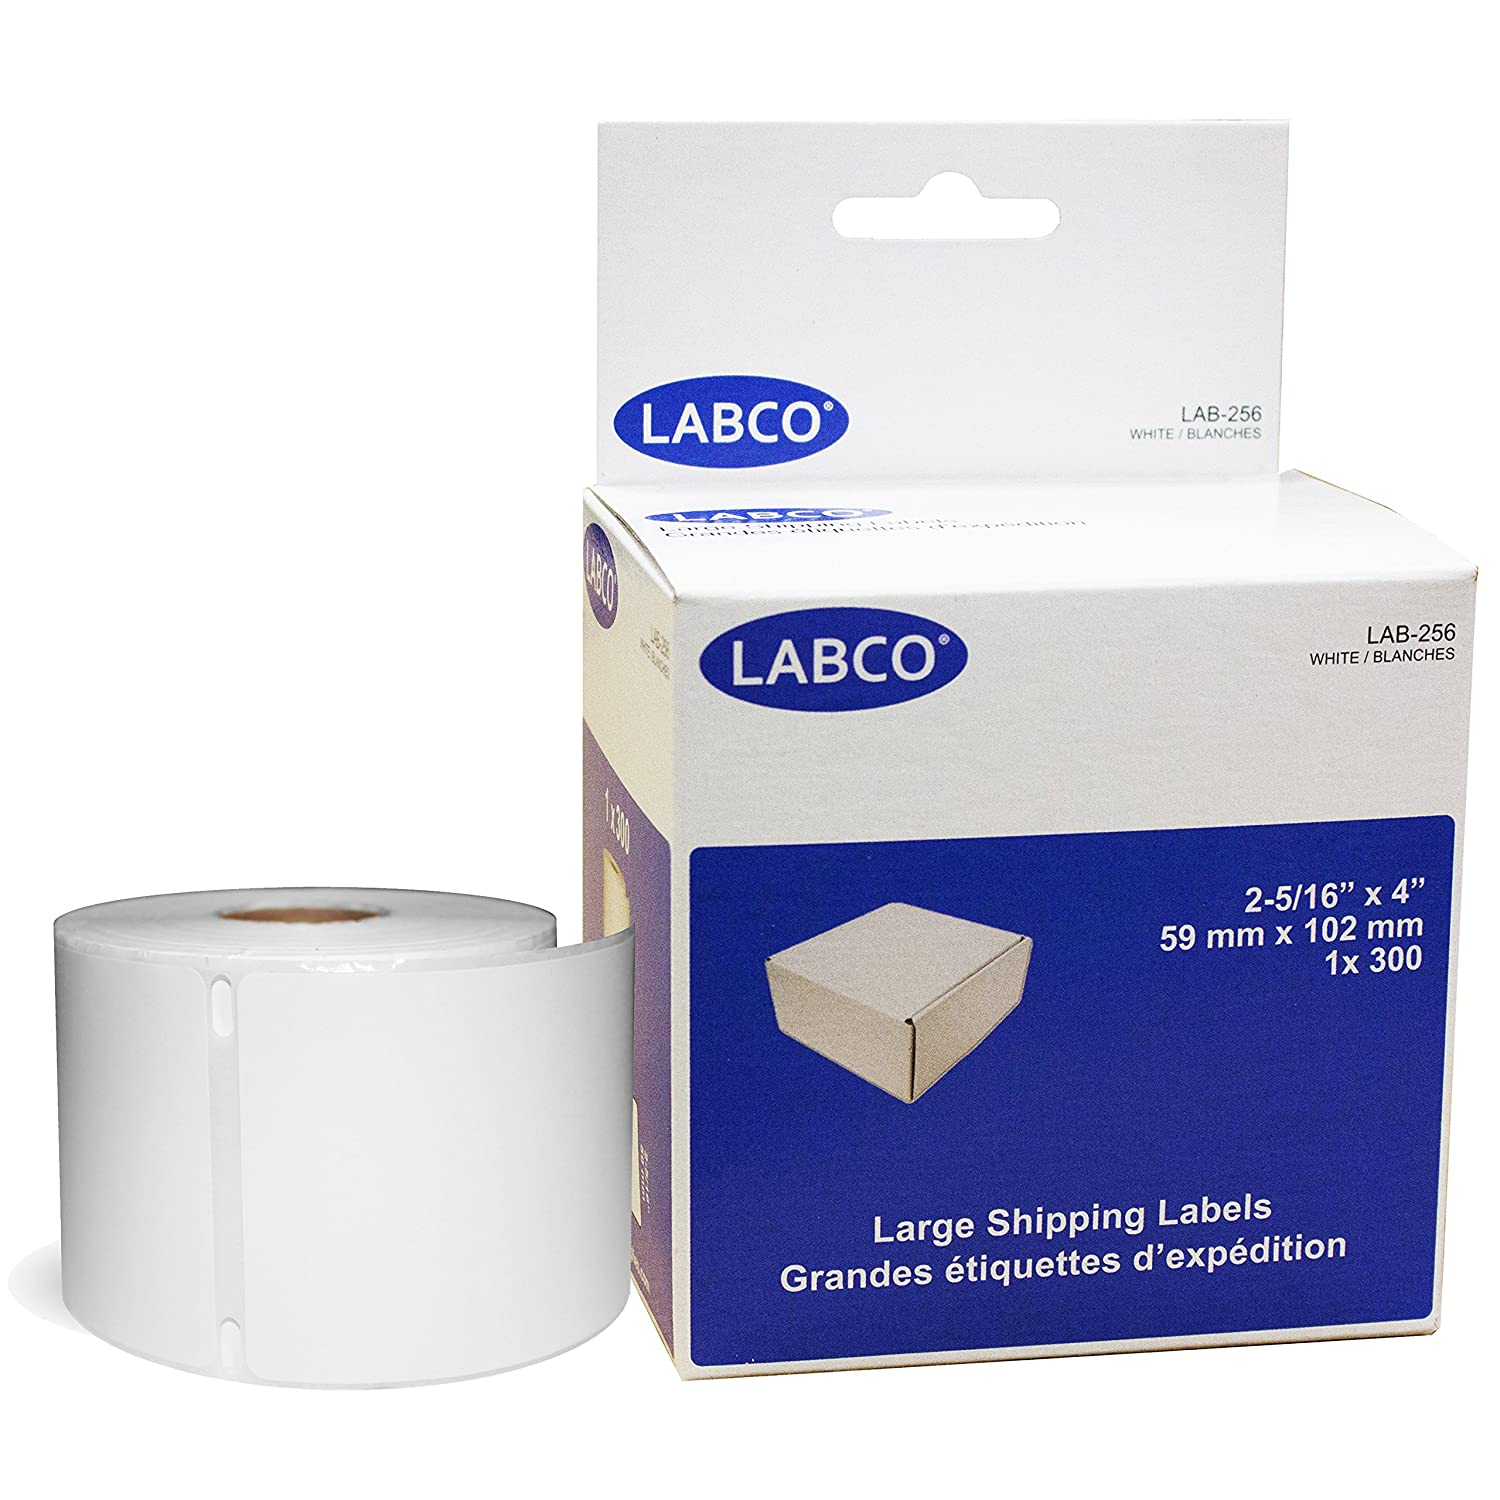 LABCO LAB-256 Thermal Large Shipping Labels 2-5/16 x 4 300 Labels White (30256)